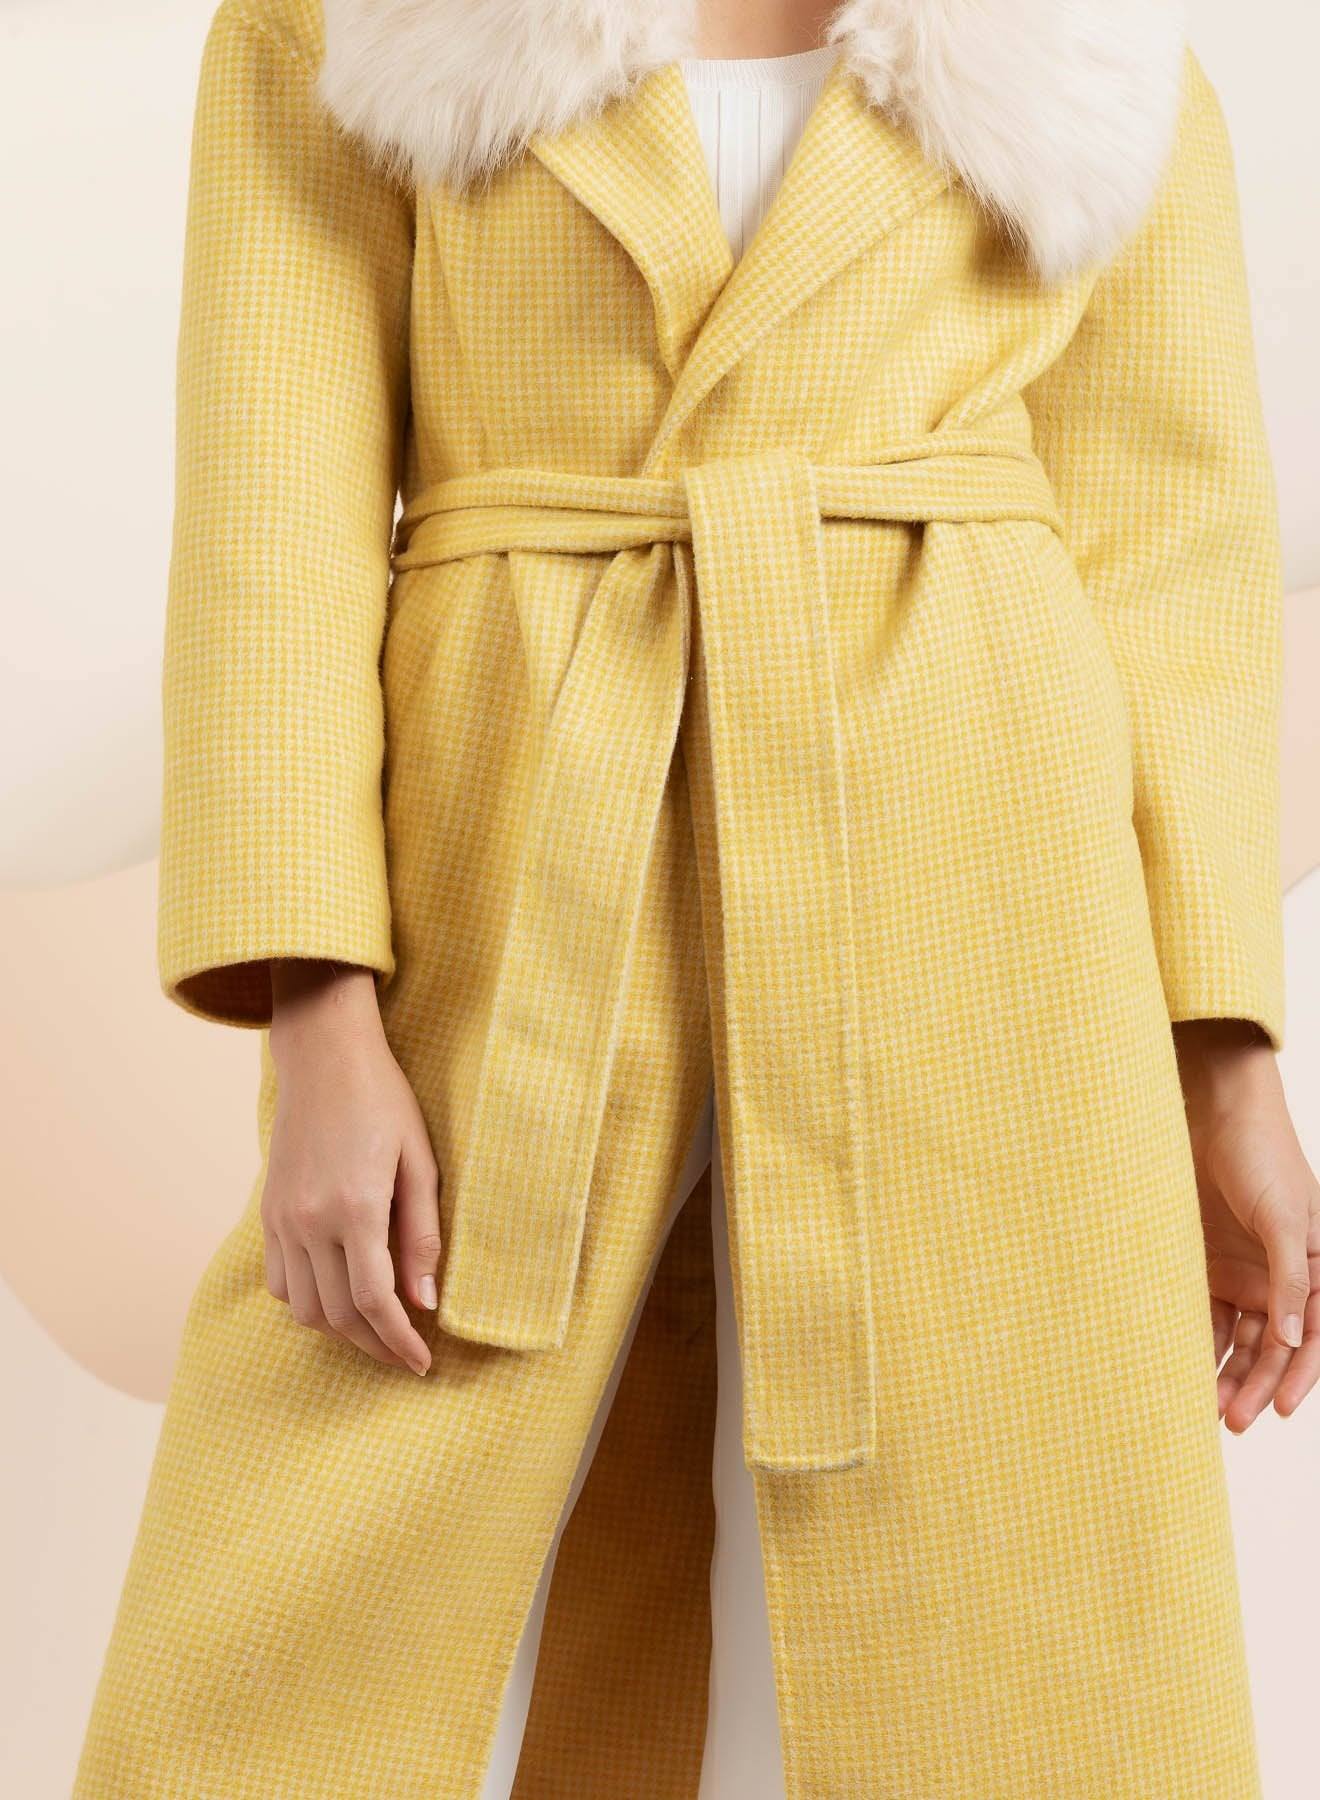 Yellow faux fur yellow coat by bubish